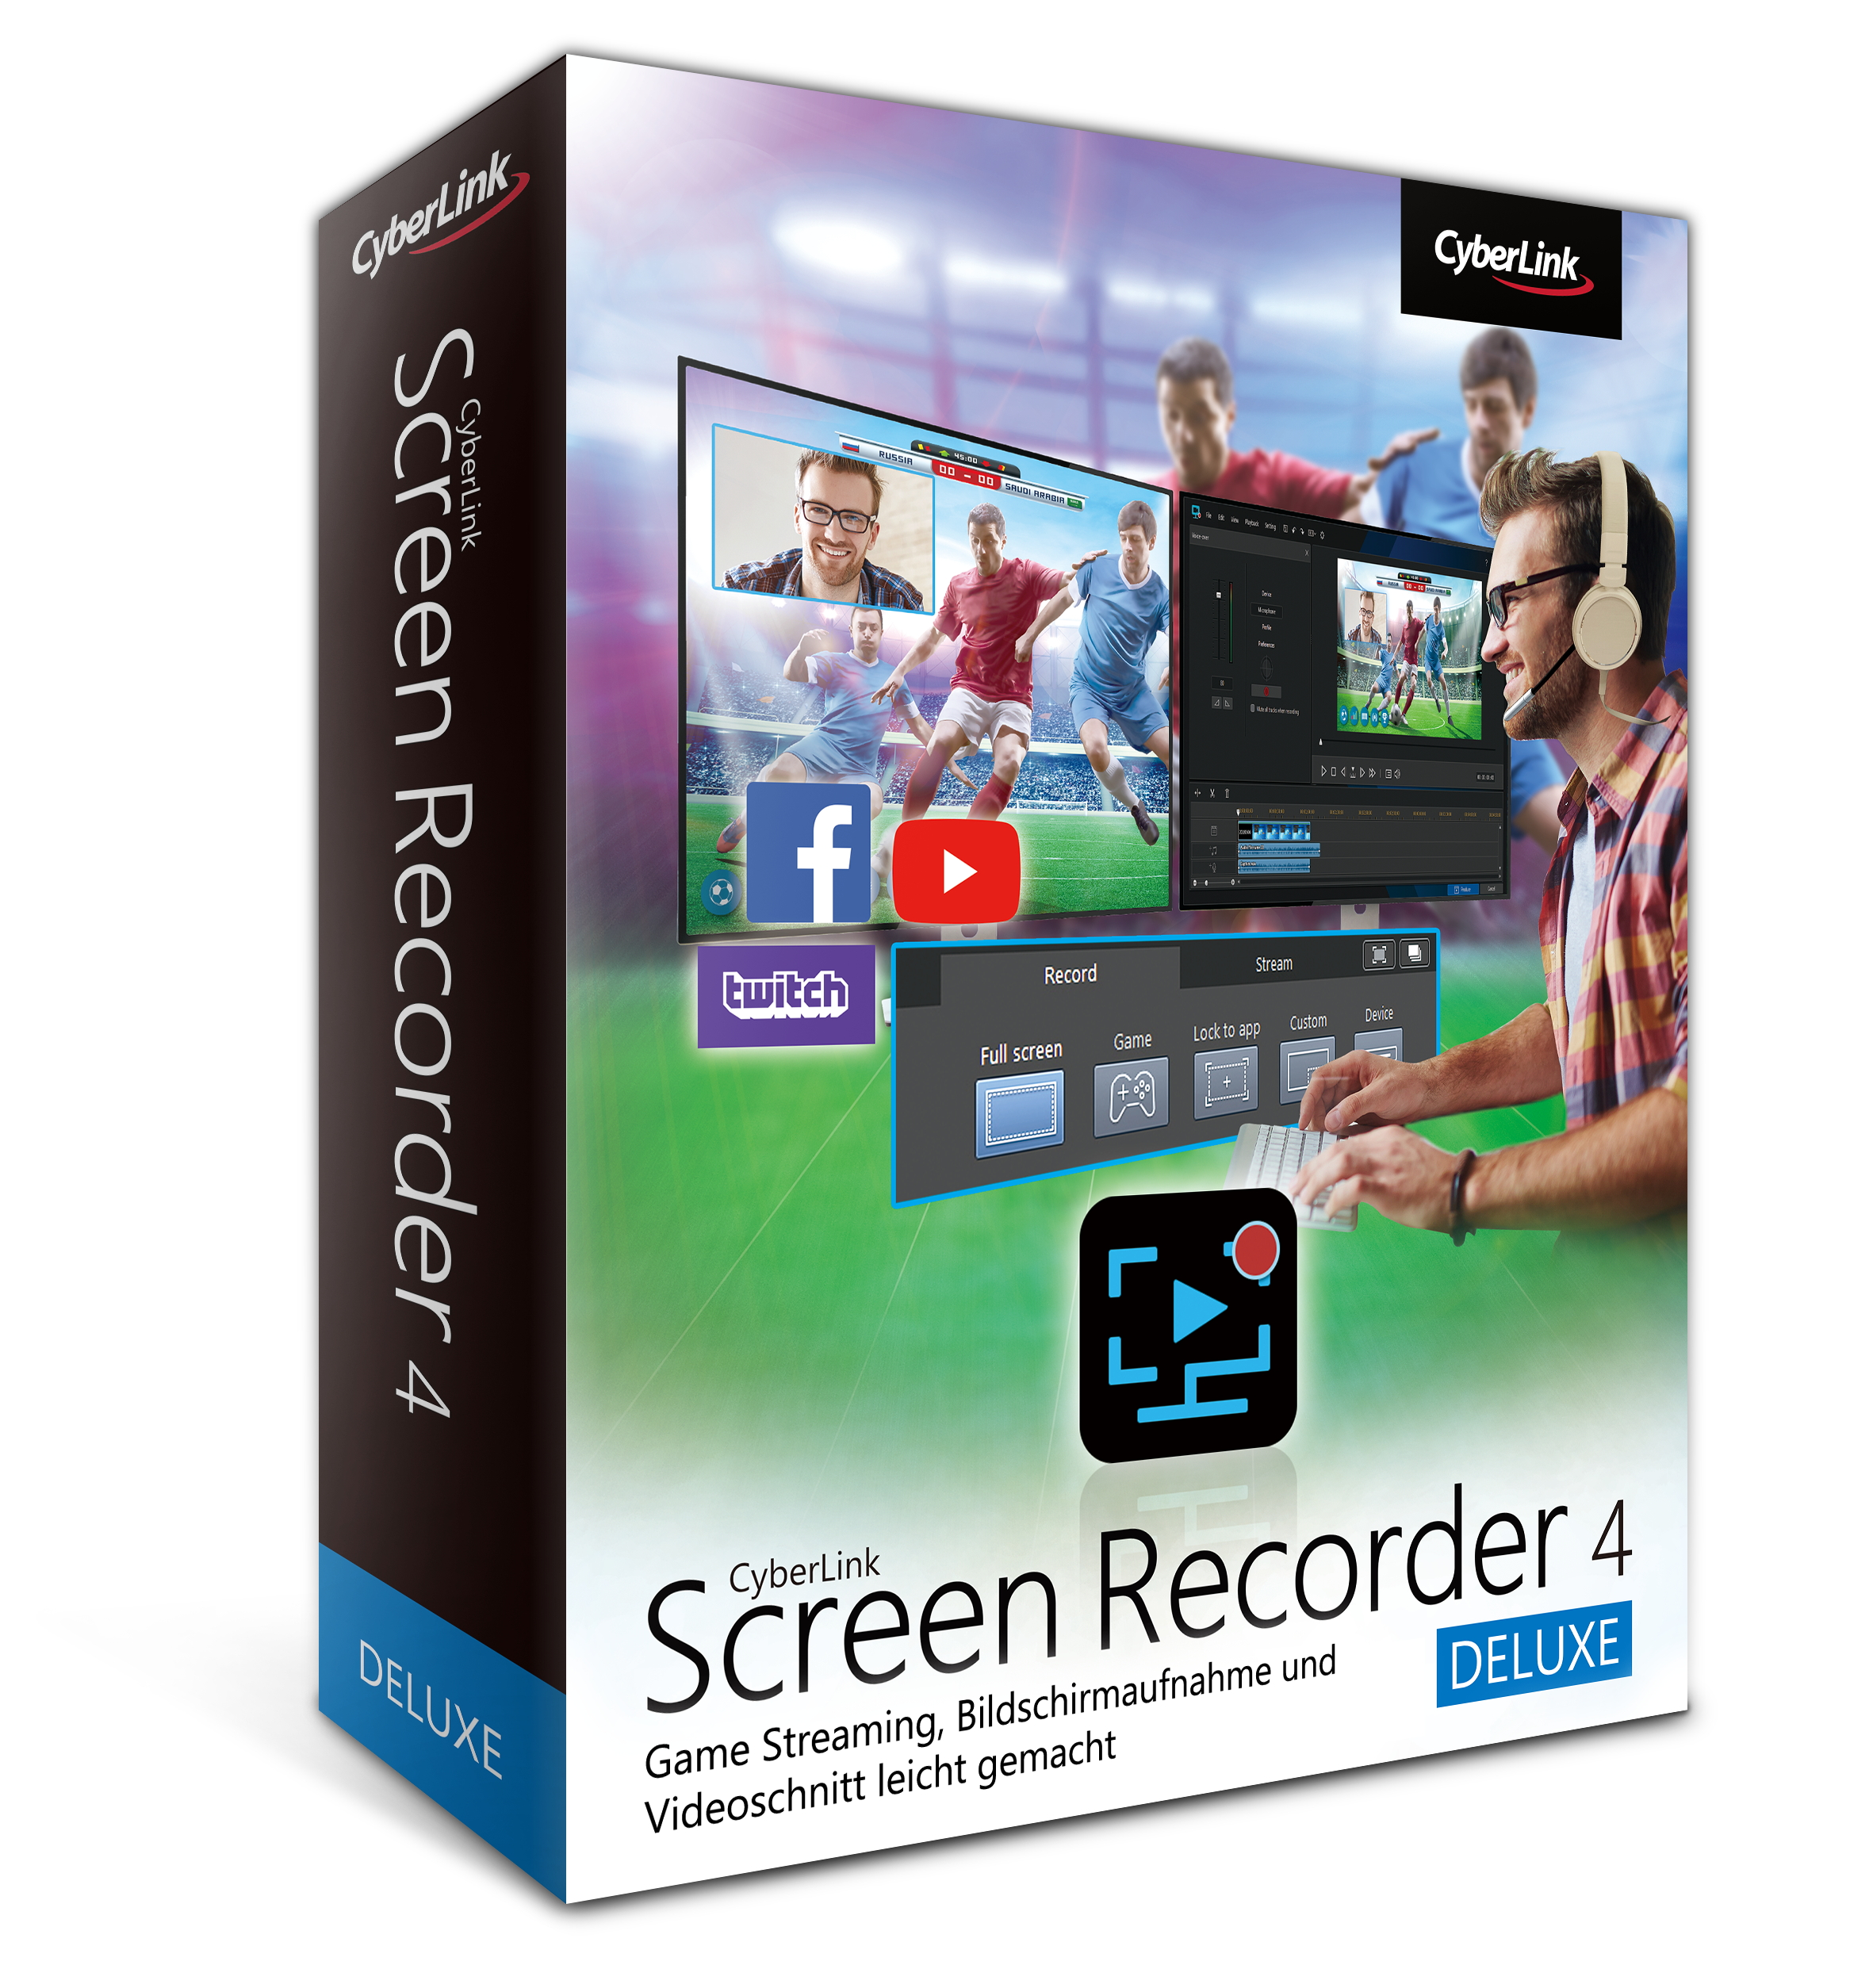 Cyberlink ScreenRecorder